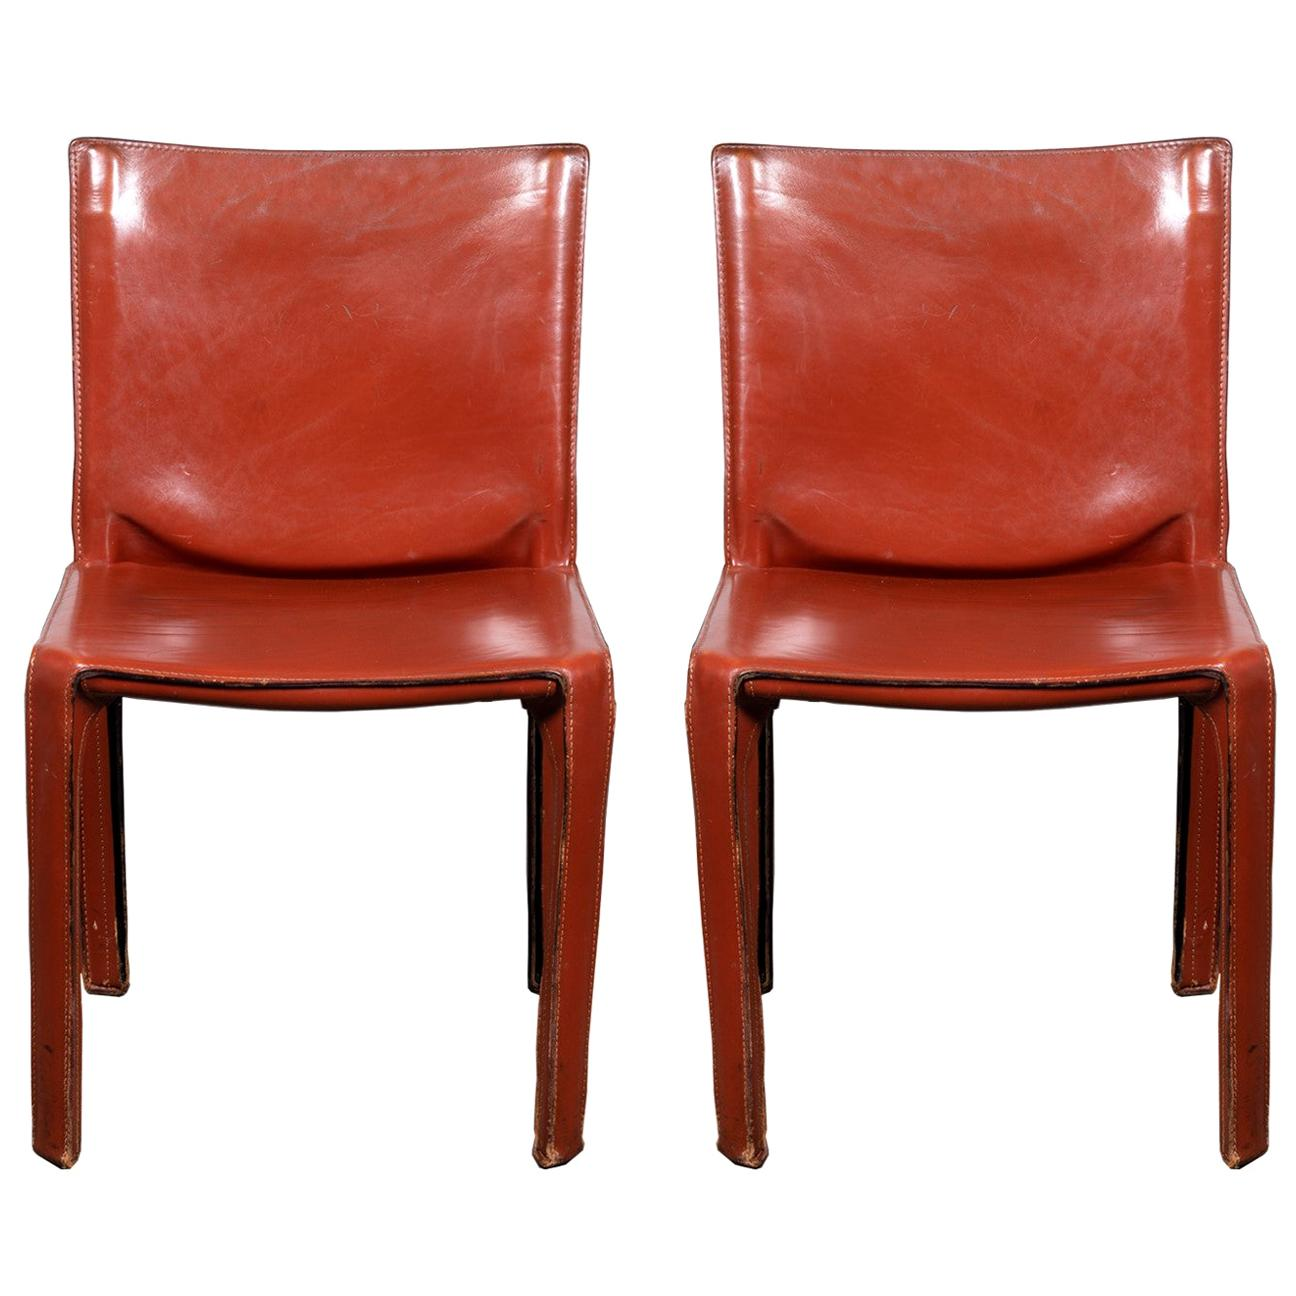 Pair of Early Mario Bellini CAB 412 Chairs in Russian Red Leather for Cassina